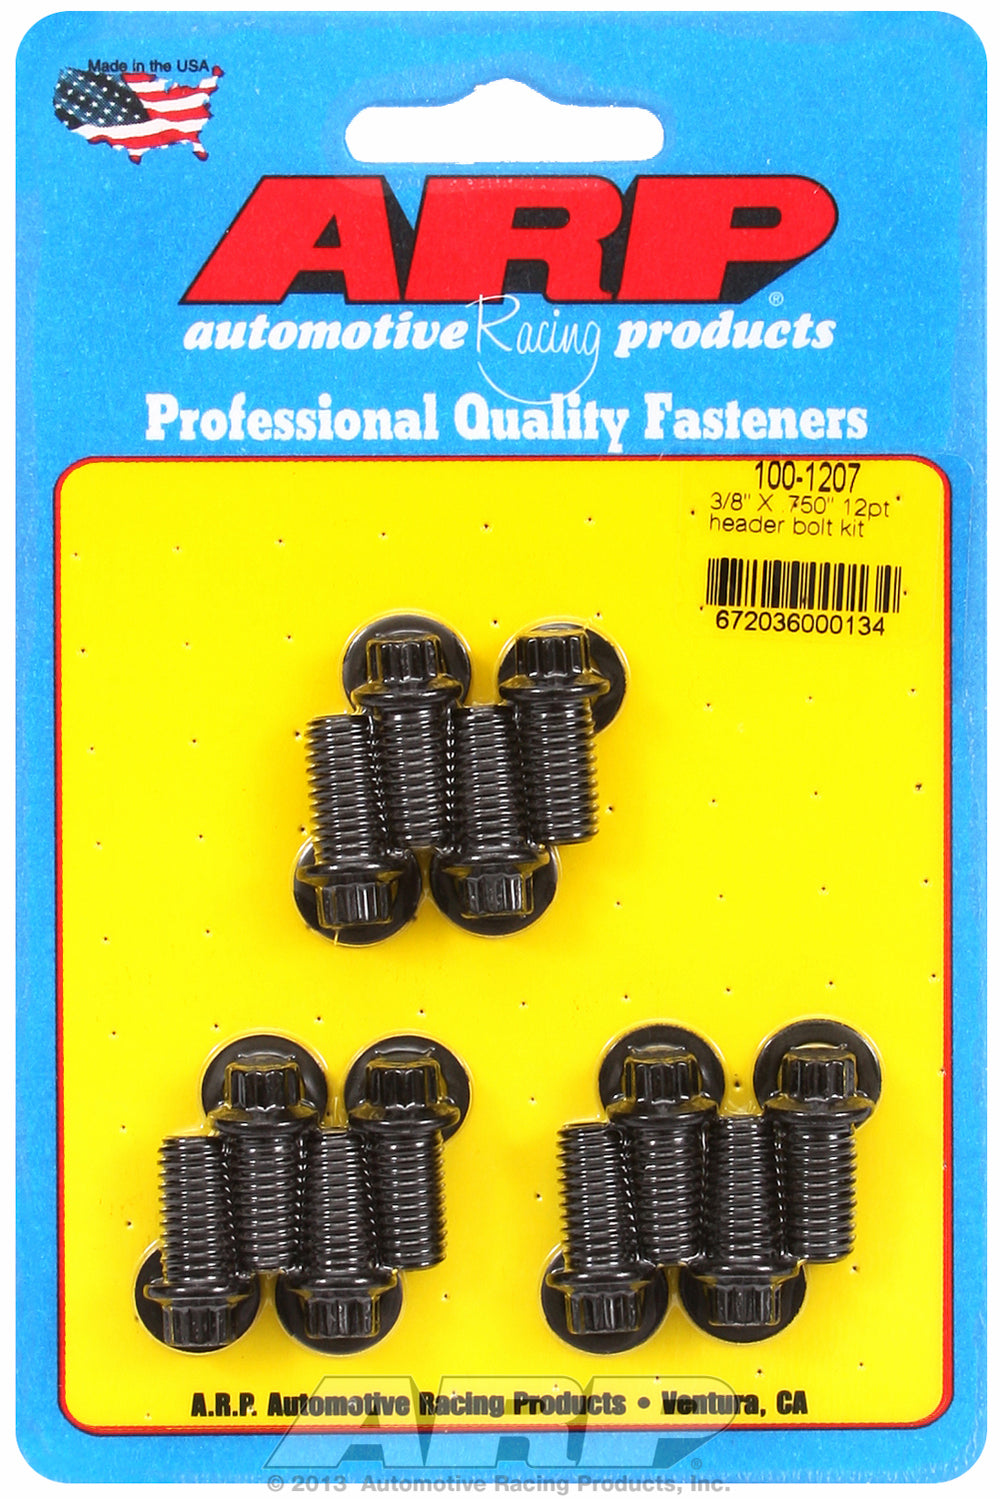 Universal Header Bolt Kit 5/16in wrench, 3/8in, .750in UHL Black Oxide 12-Pt Head